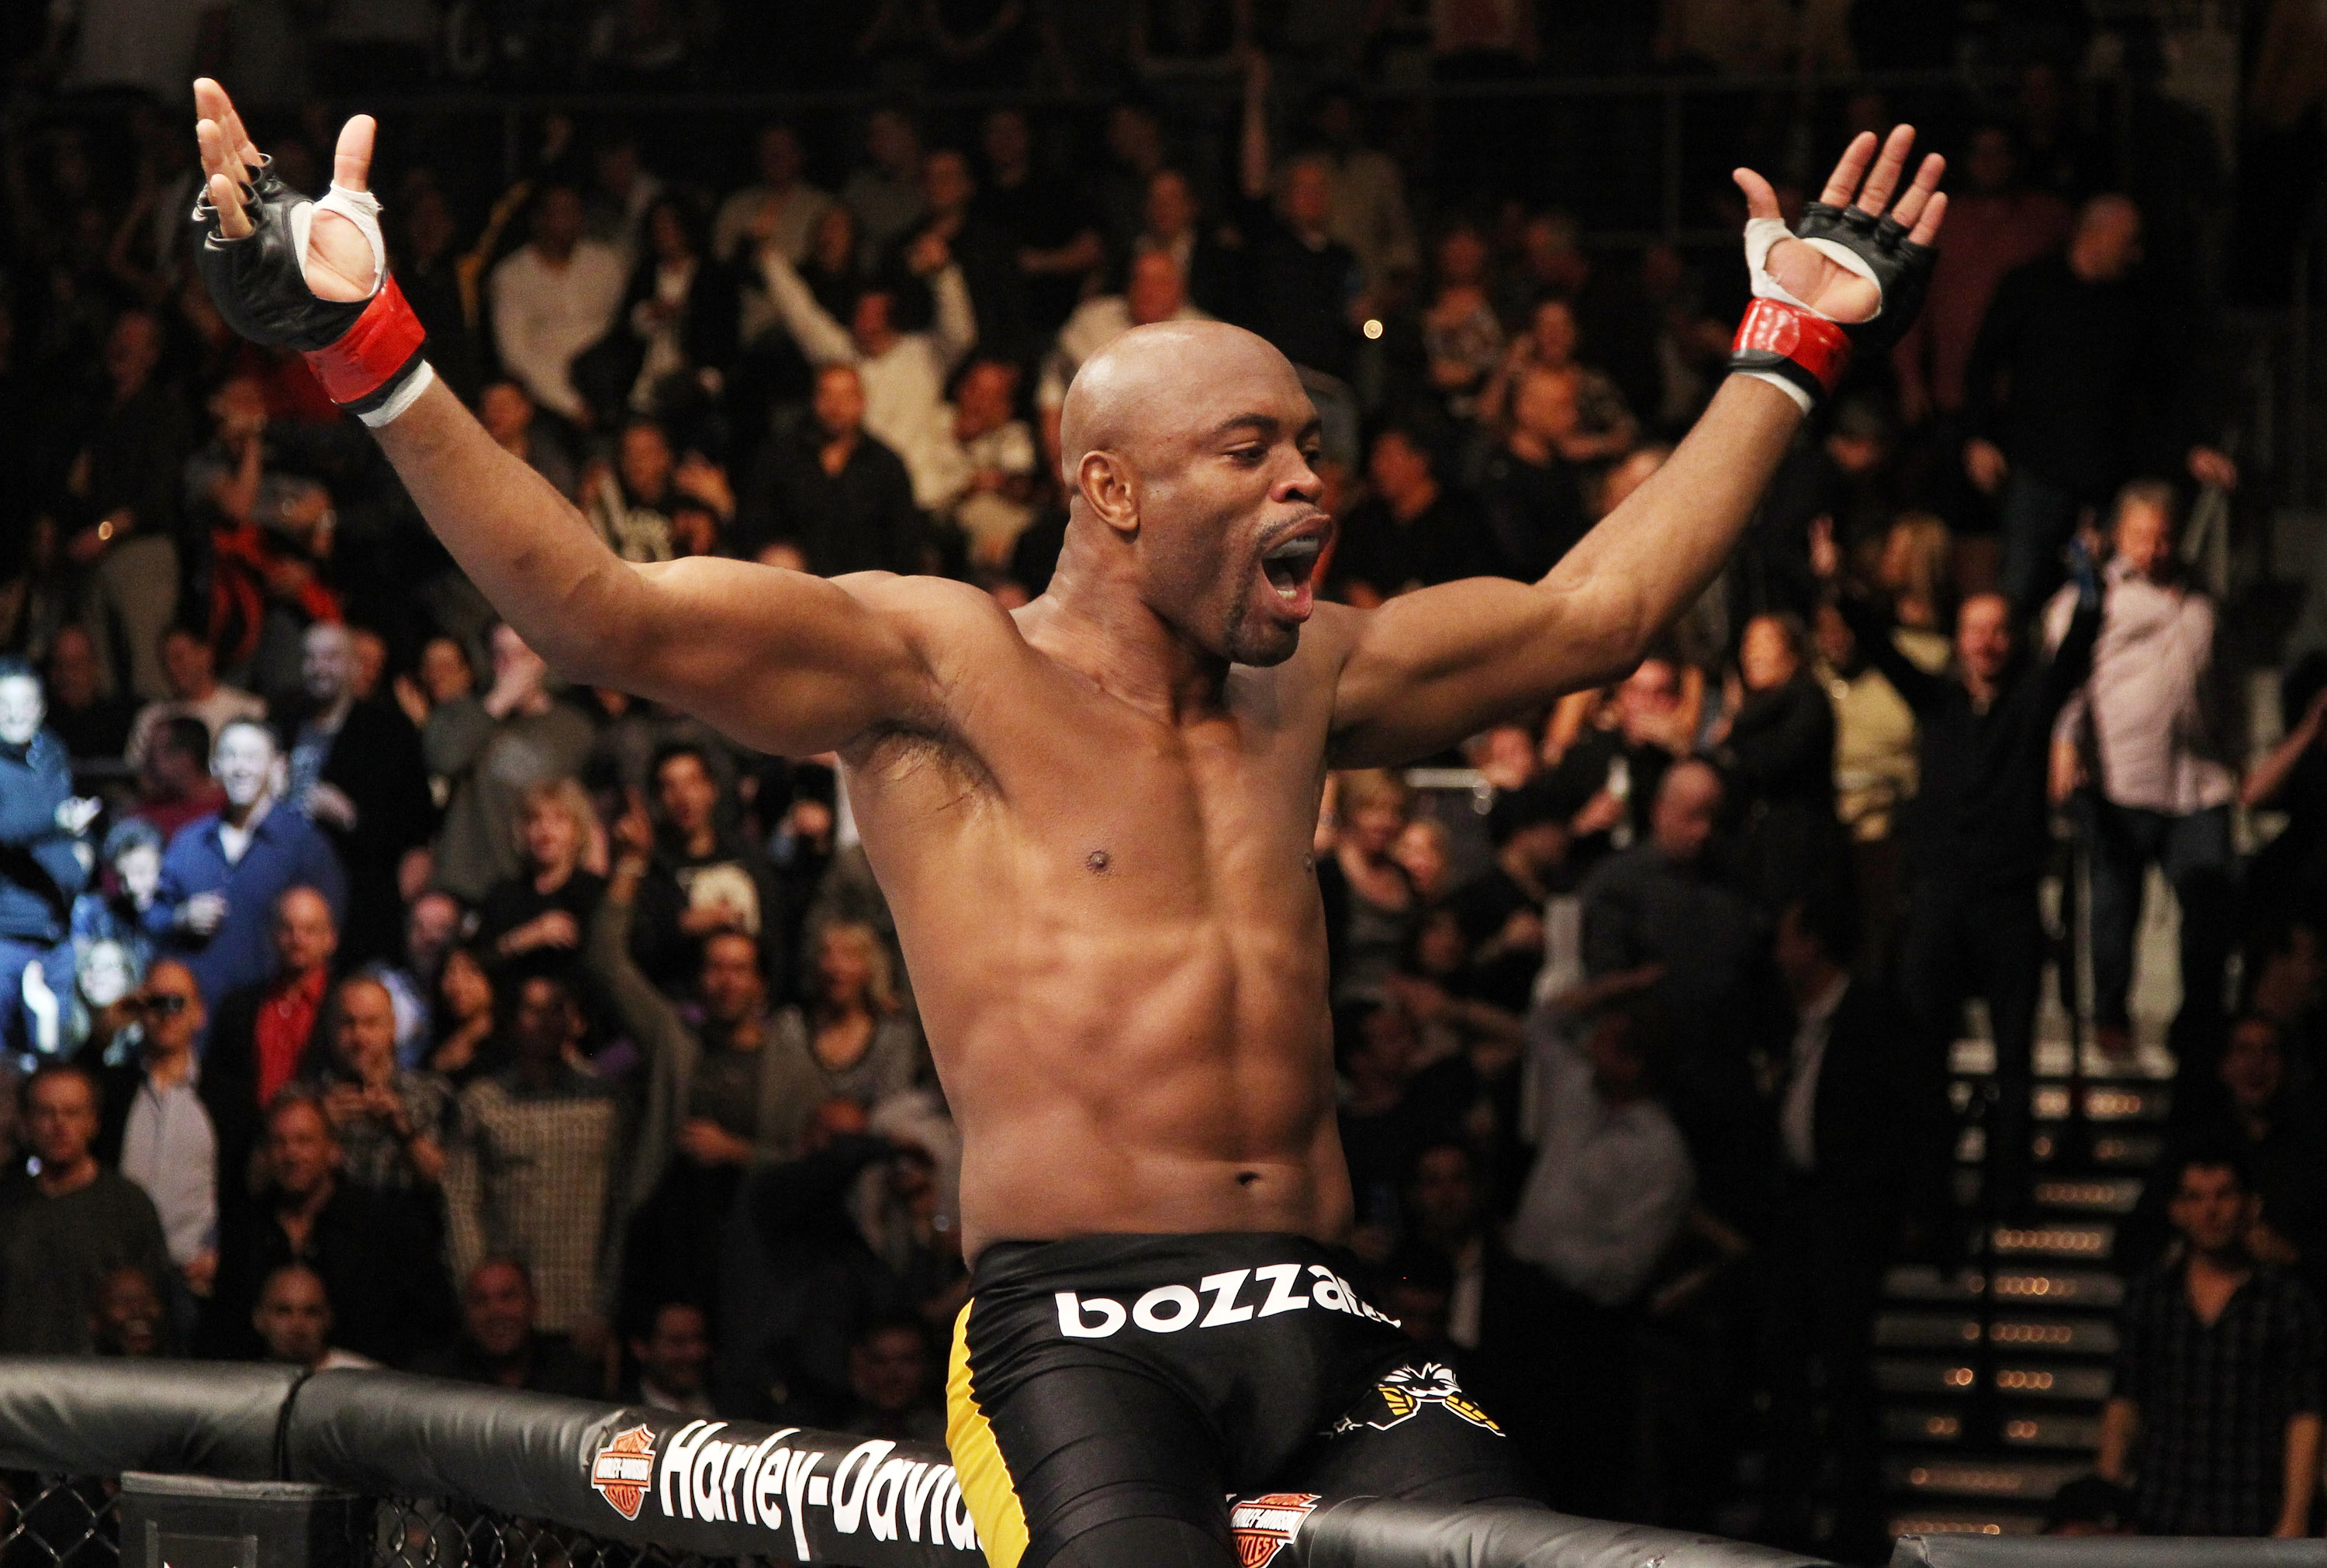 Silva celebrates after defeating Vitor Belfort